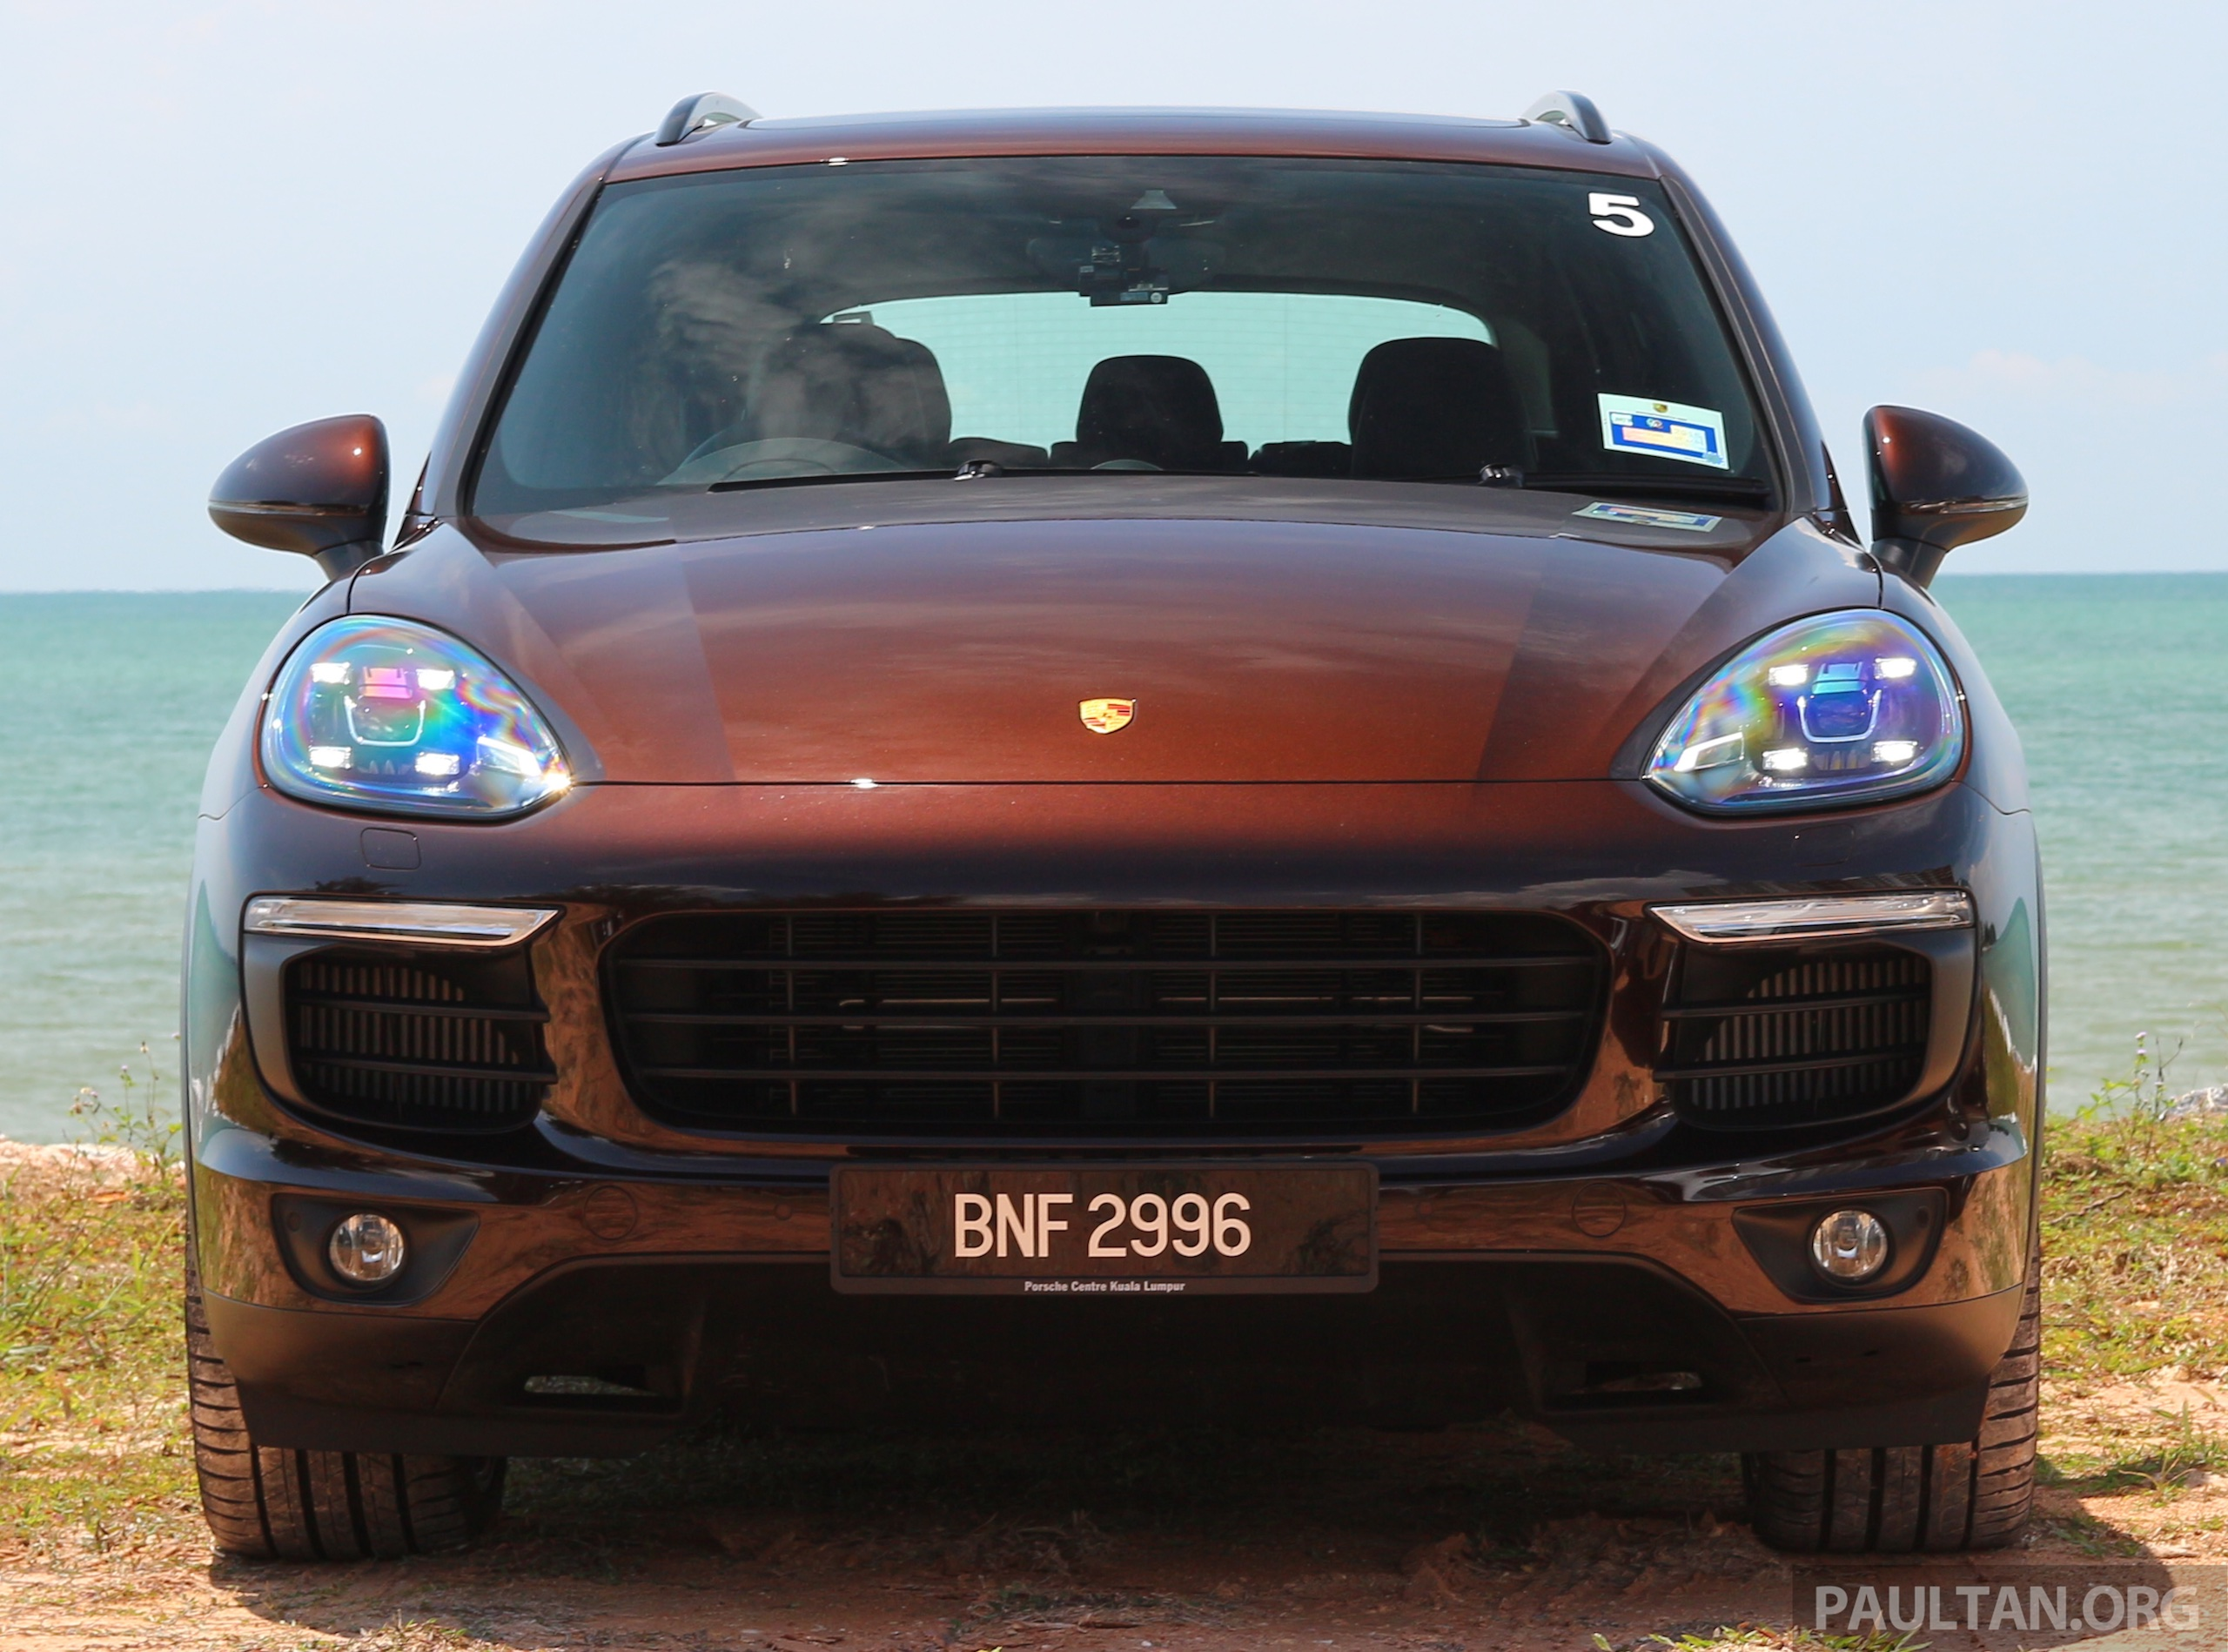 driven porsche cayenne facelift to johor and back image 420737. Black Bedroom Furniture Sets. Home Design Ideas